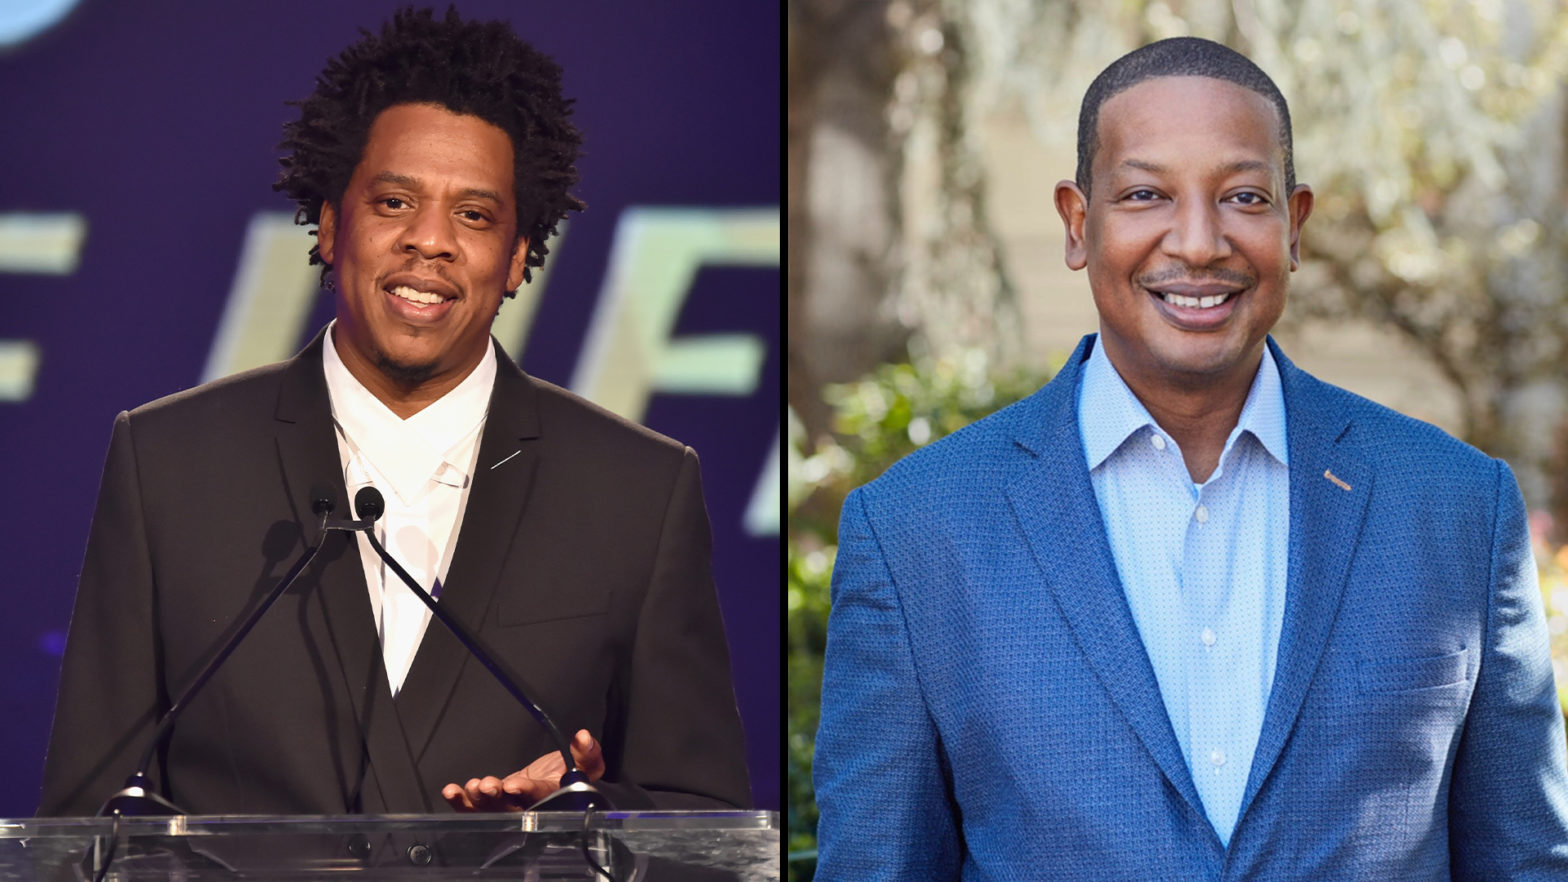 Jay-Z Appoints First Black CEO to Lead Cannabis Company